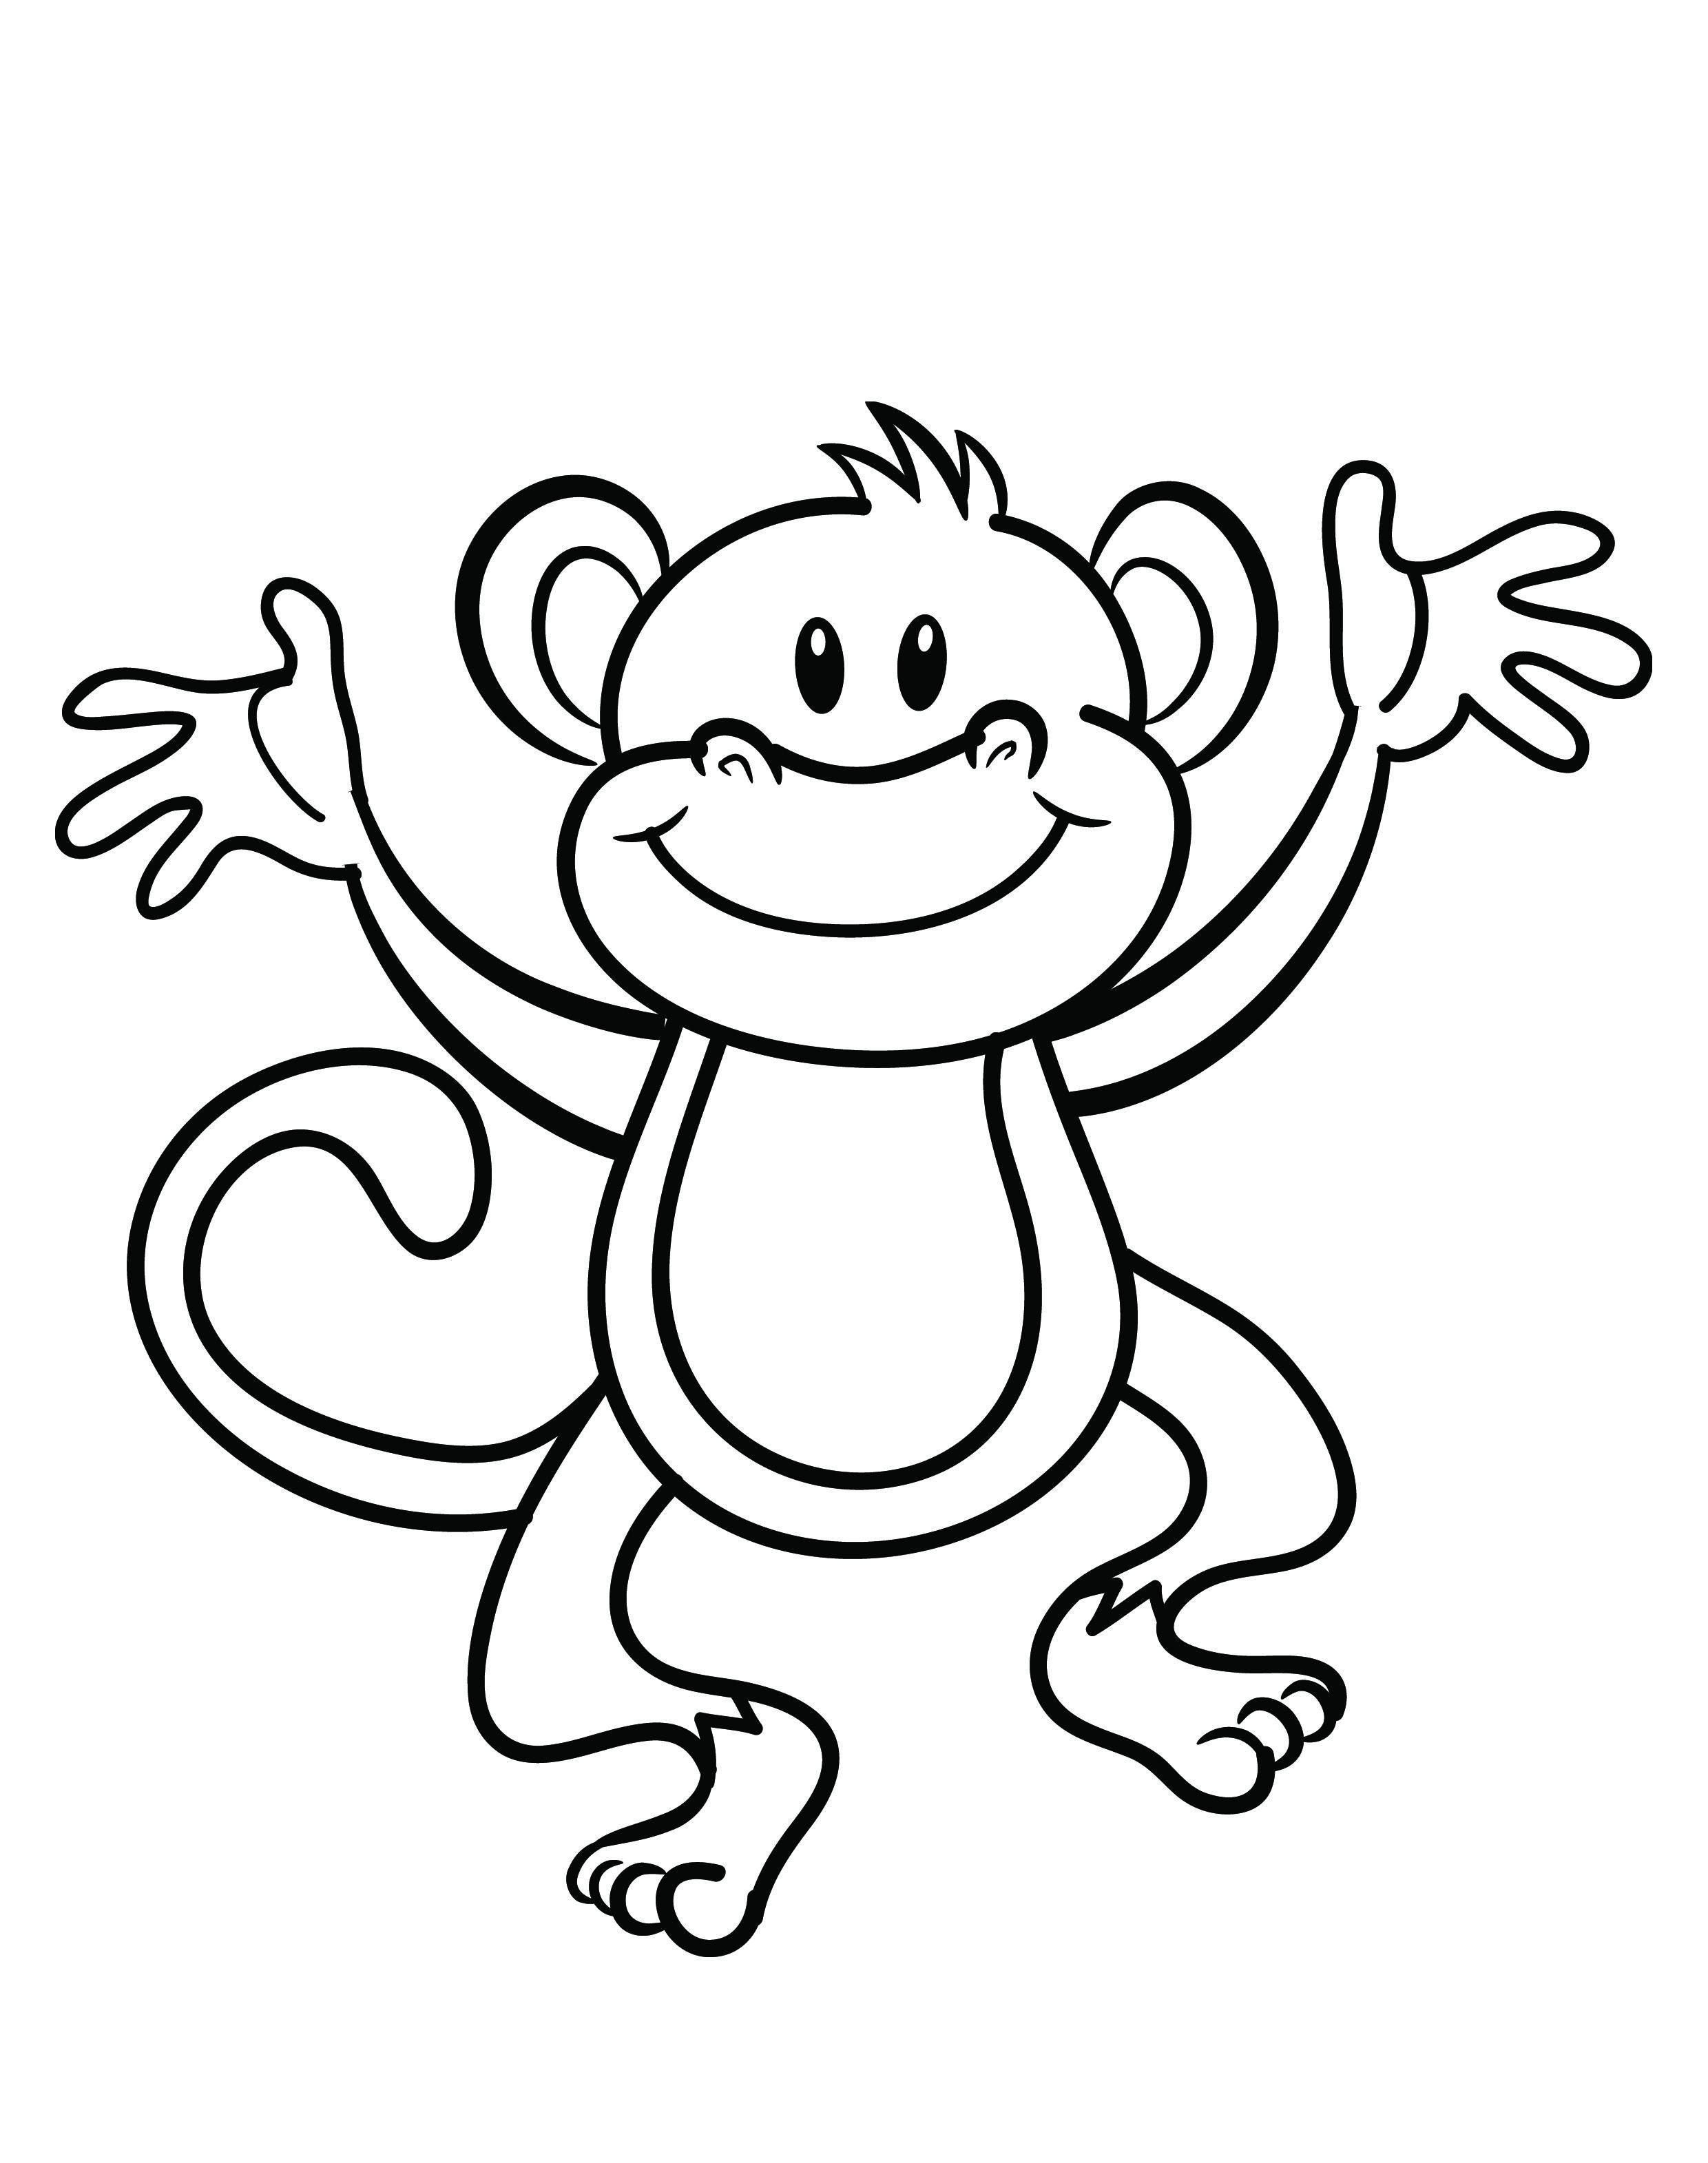 coloring pages of monkeys # 0